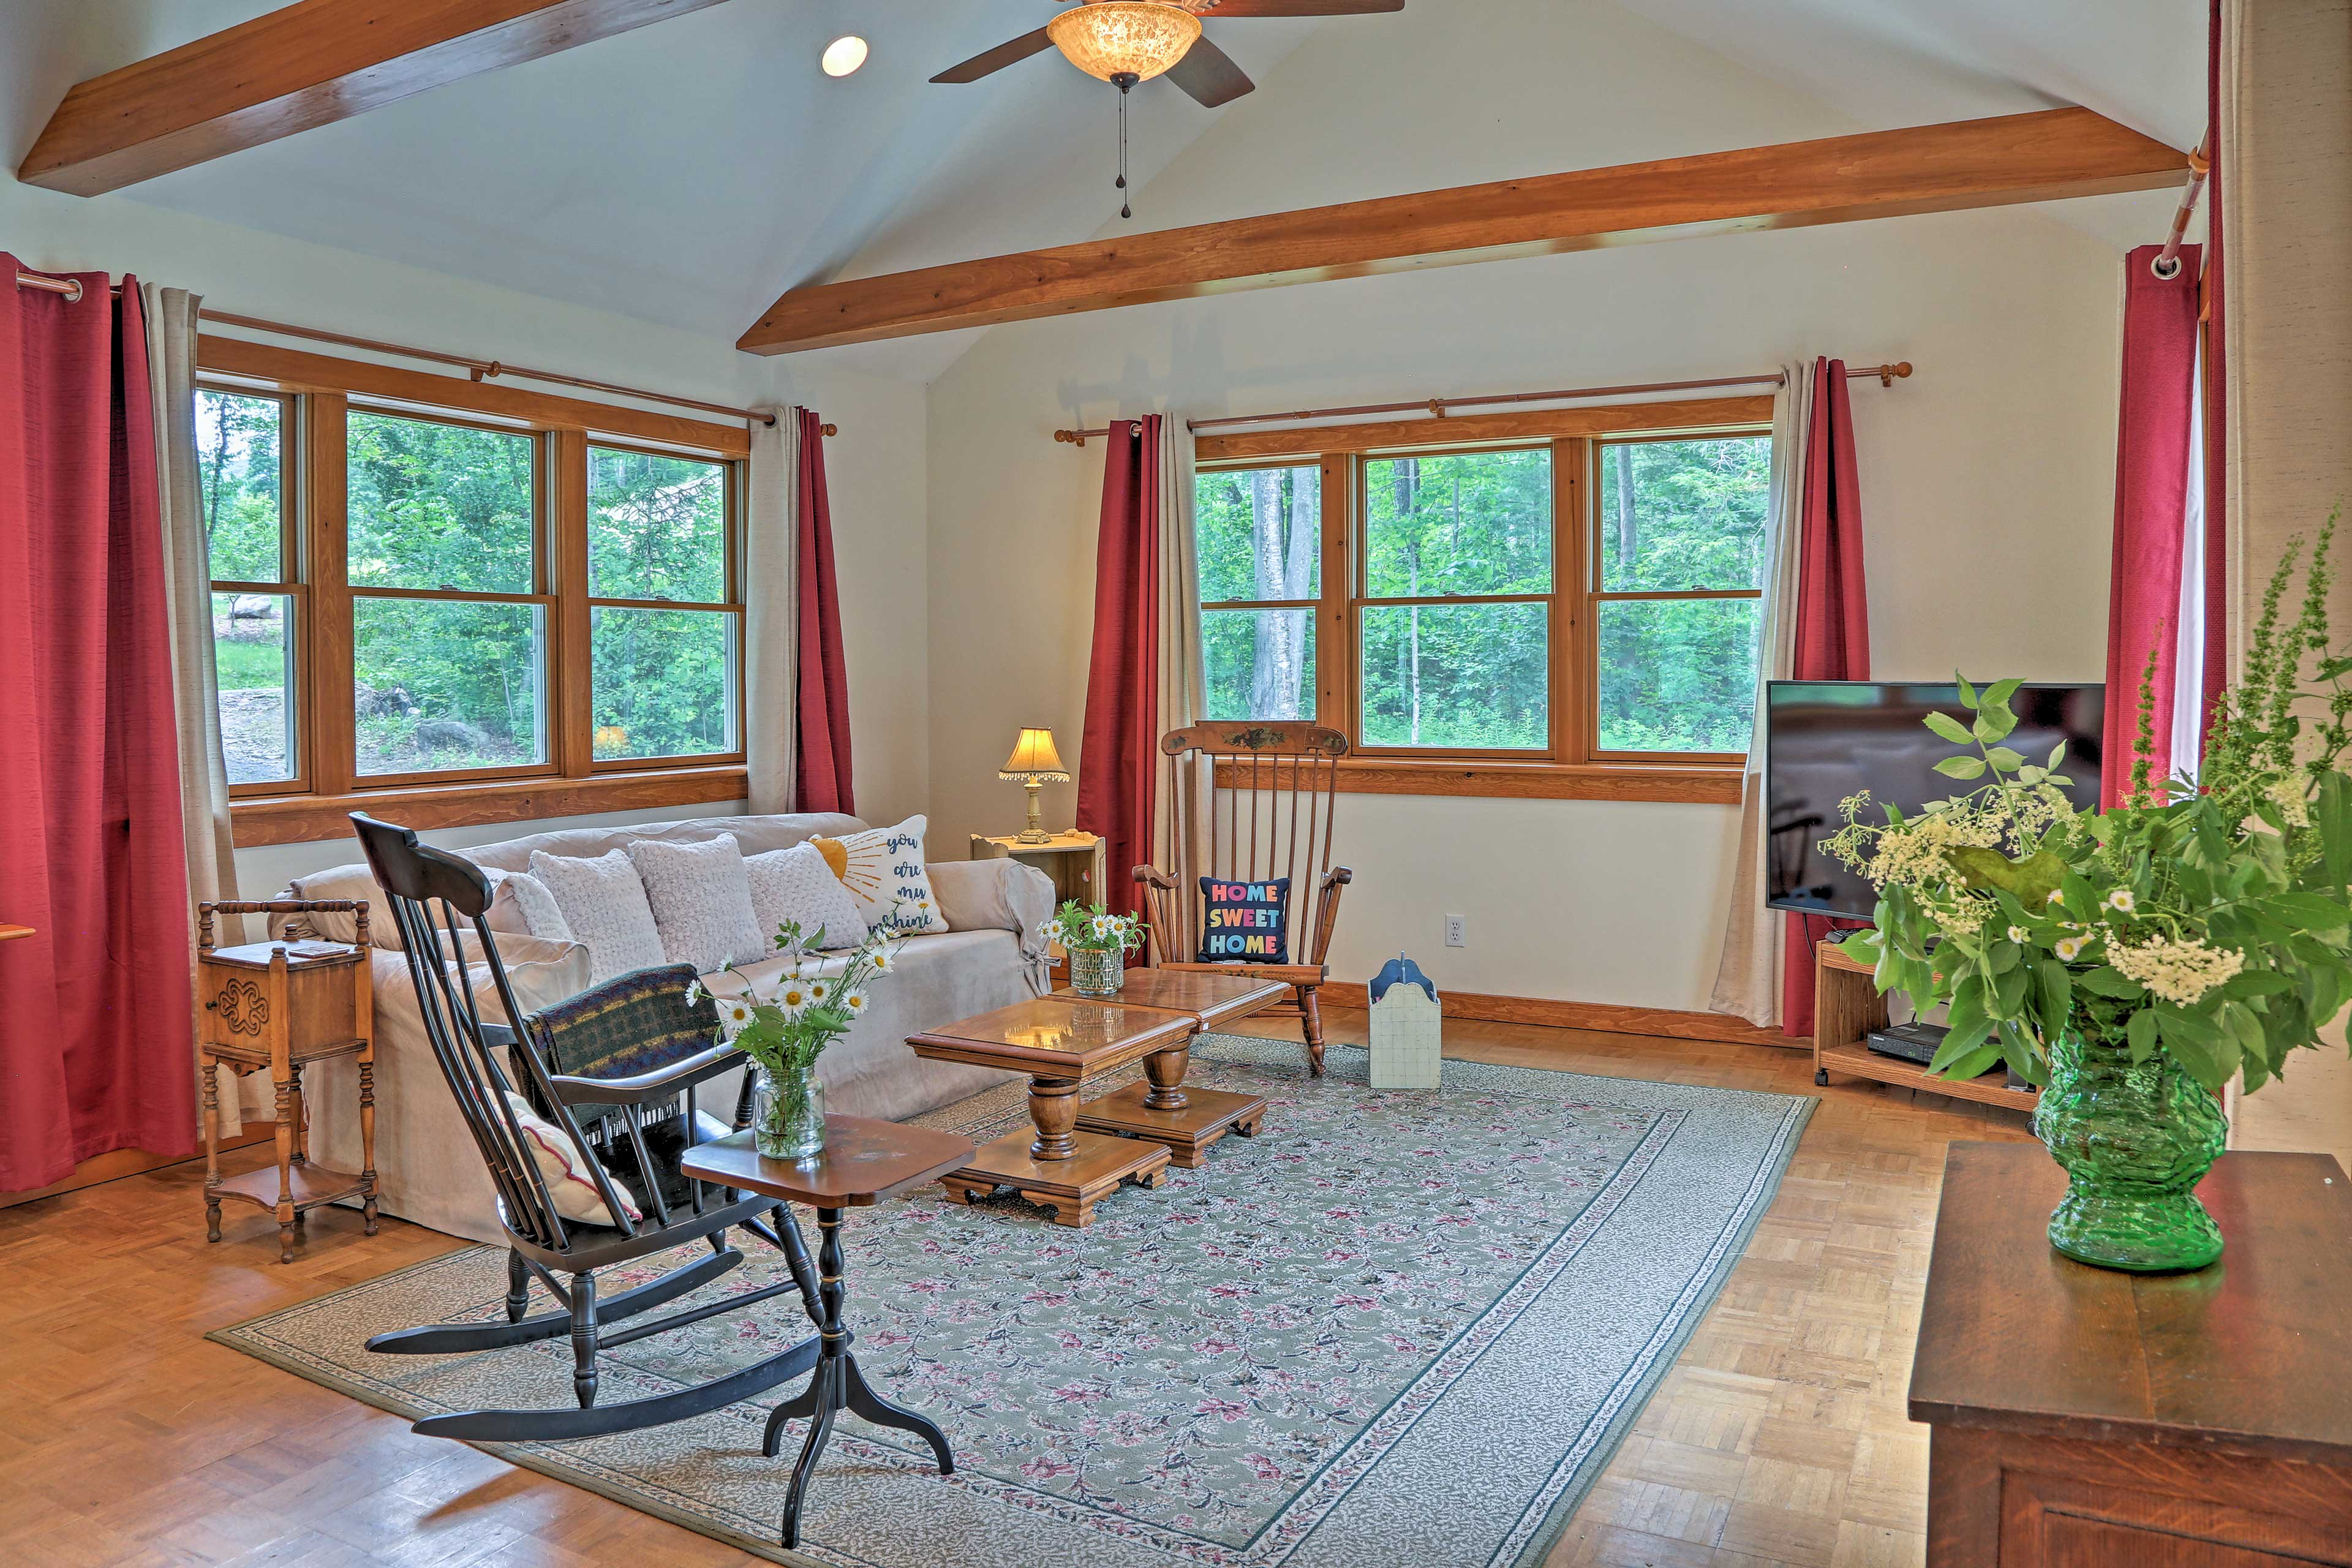 A wealth of windows let natural light pour into the home.